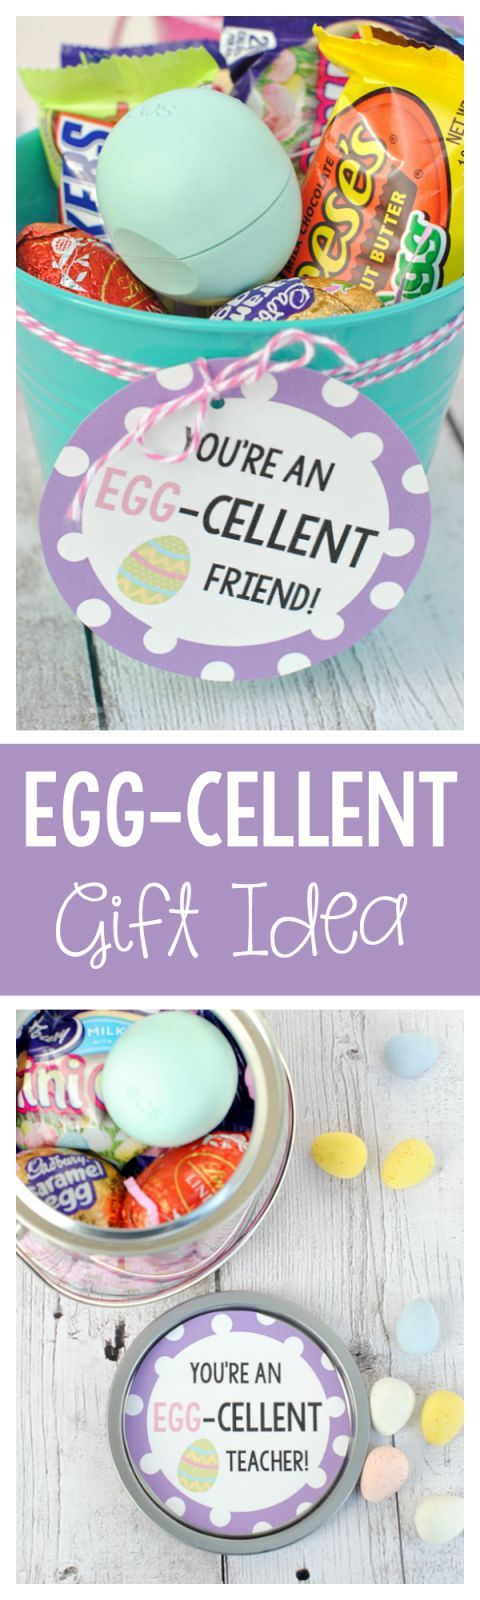 Egg cellent easter gift idea easter gift and holidays egg cellent easter gift idea negle Choice Image